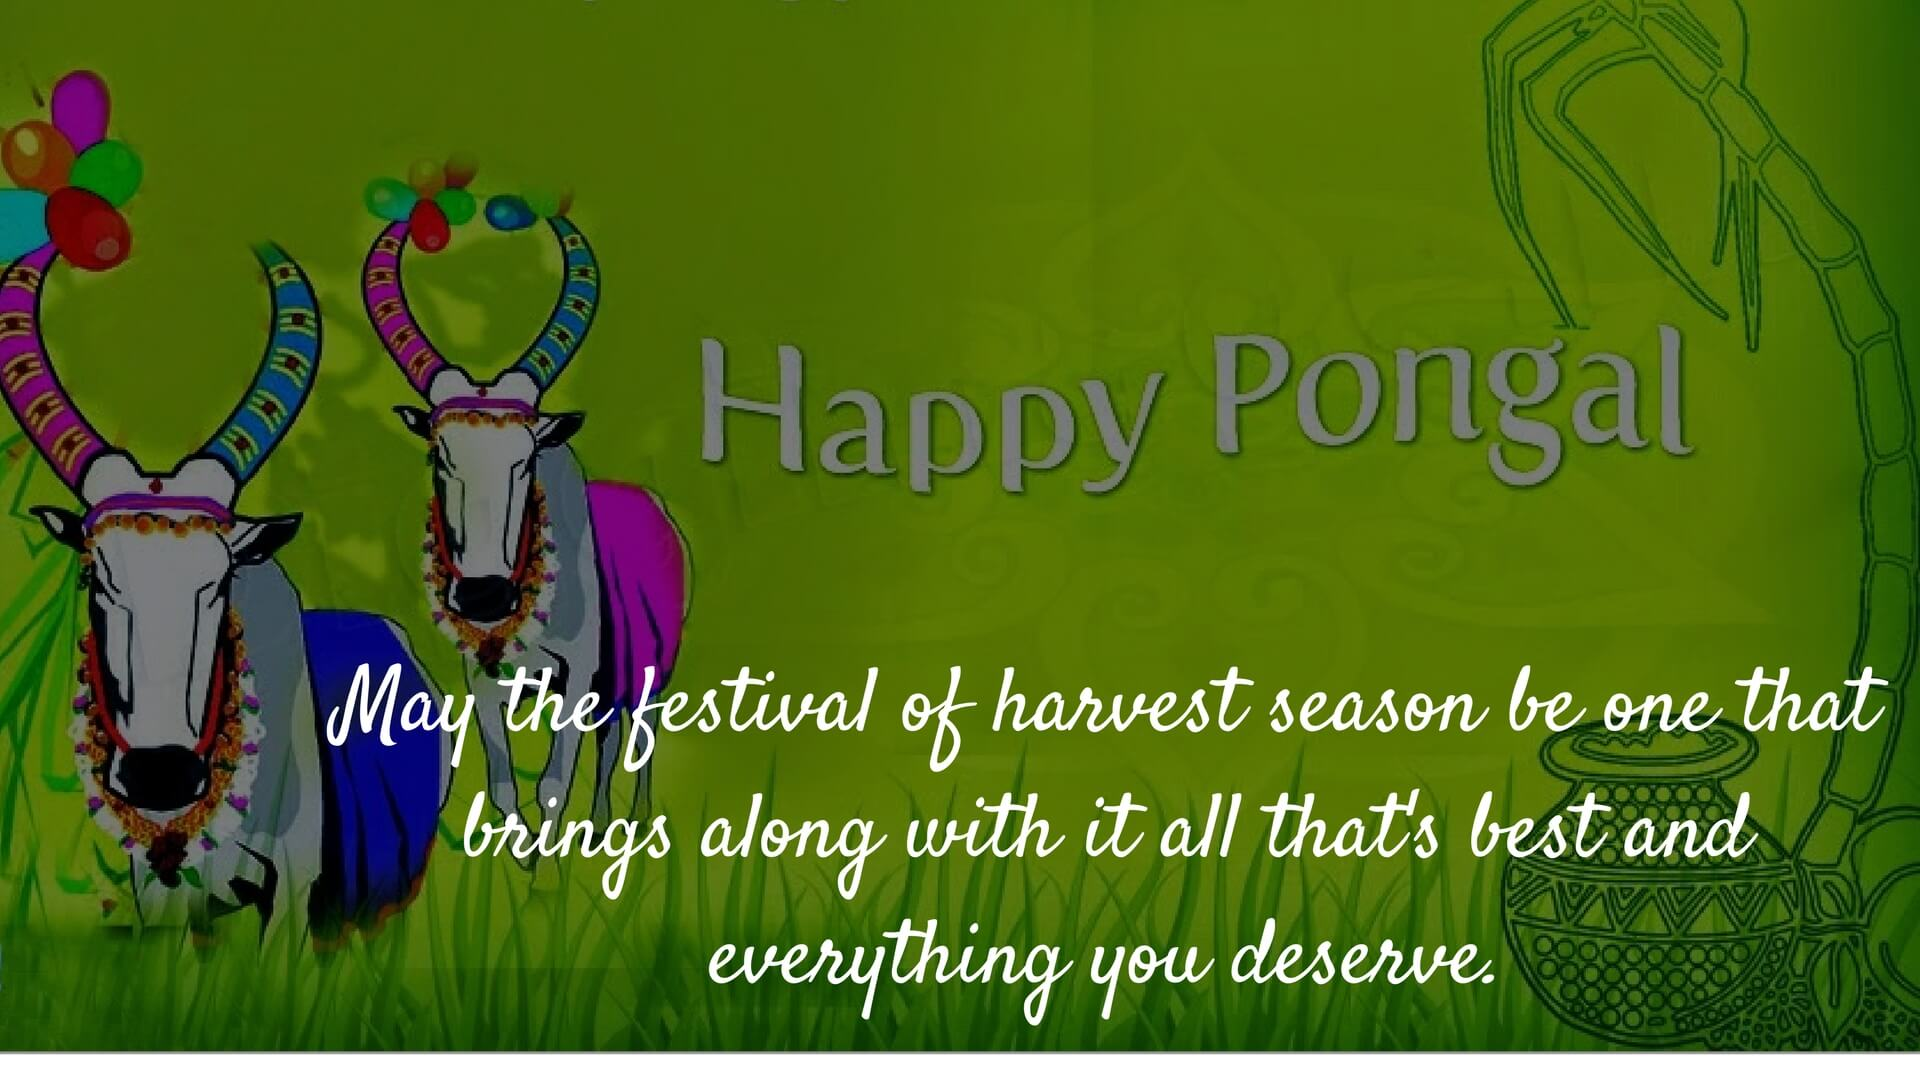 Happy Pongal Hd Wallpaper Wishes In English Hindi Telugu Tamil Malayalam